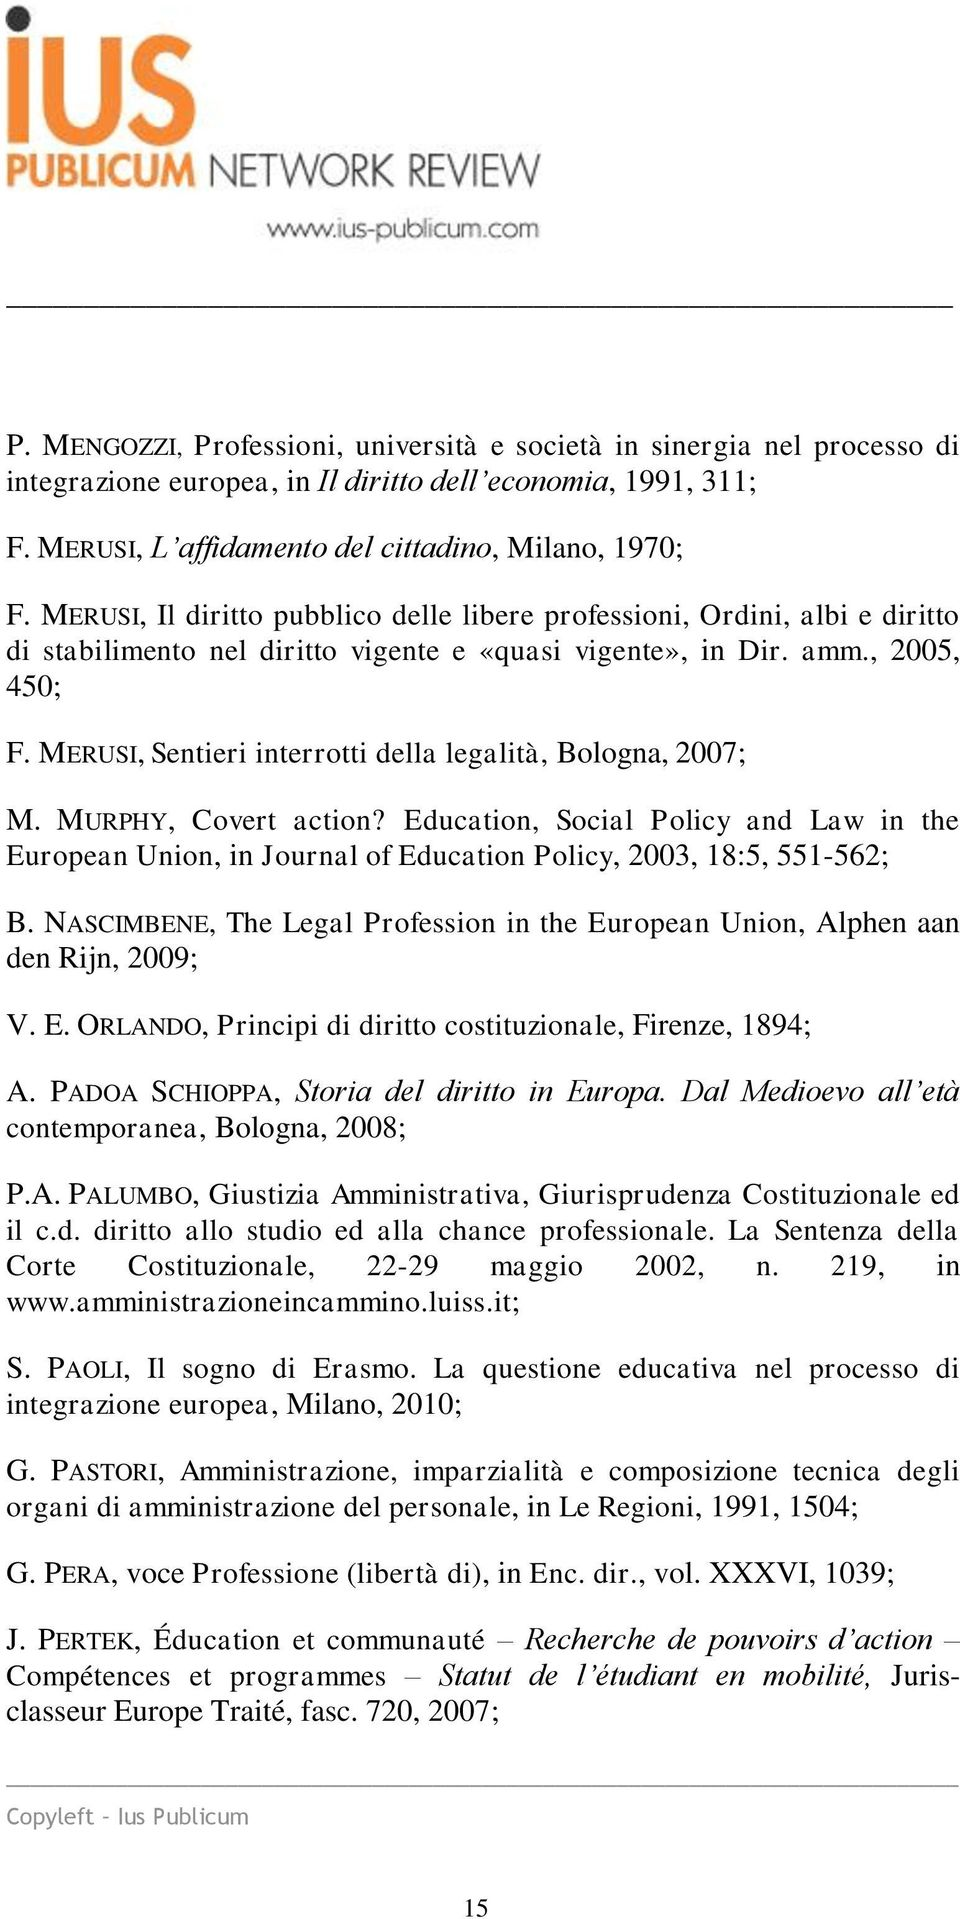 MERUSI, Sentieri interrotti della legalità, Bologna, 2007; M. MURPHY, Covert action? Education, Social Policy and Law in the European Union, in Journal of Education Policy, 2003, 18:5, 551-562; B.